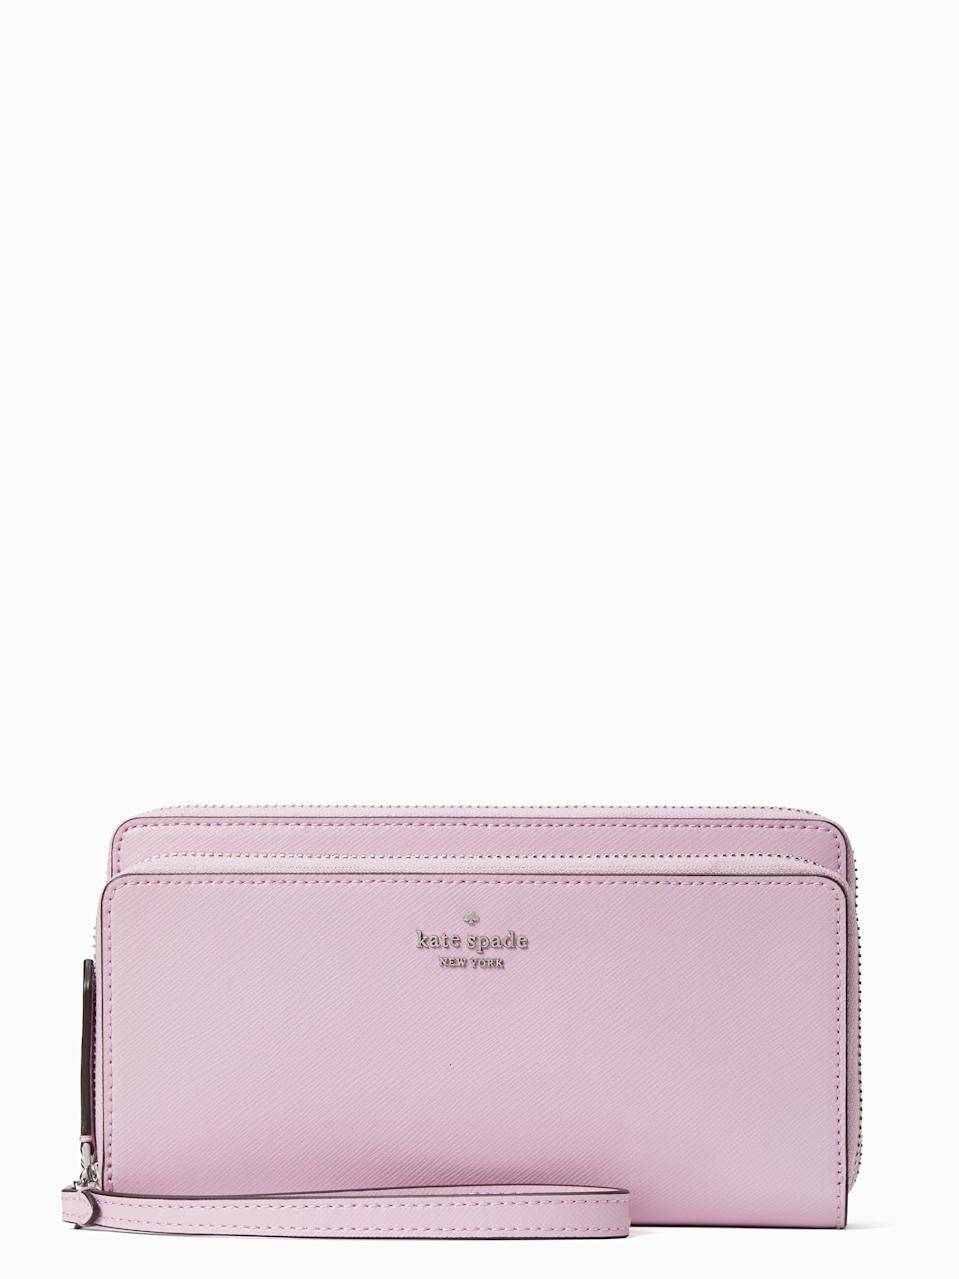 Payton Large Caryall Wristlet - Kate Spade, $69 (originally $239)